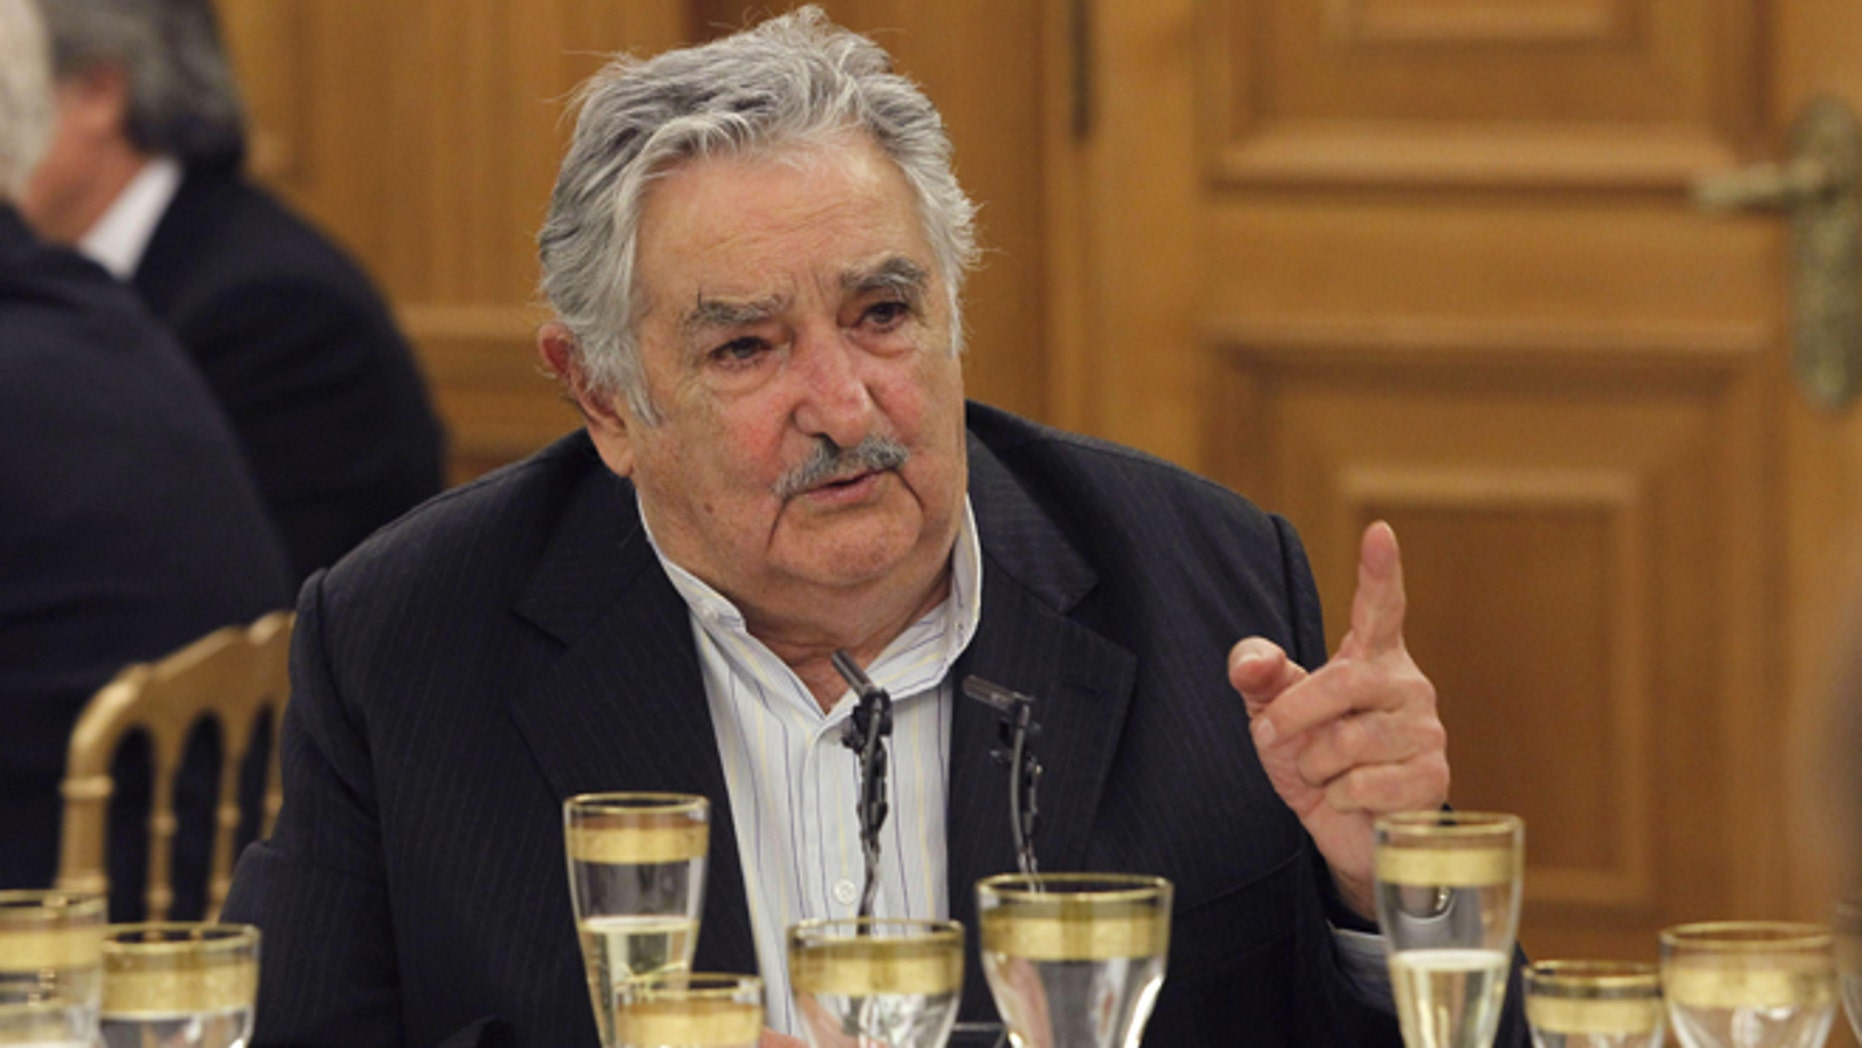 MADRID, SPAIN - MAY 29:  President of Uruguay Jose Mujica attends a dinner hosted by King Juan Carlos I of Spain (not pictured) at Zarzuela Palace on May 29, 2013 in Madrid, Spain. Uruguay's President Jose Mujica is visiting Spain as part of an official tour to China, Spain, Italy and Vatican.  (Photo by Alberto Martin - Pool/Getty Images)